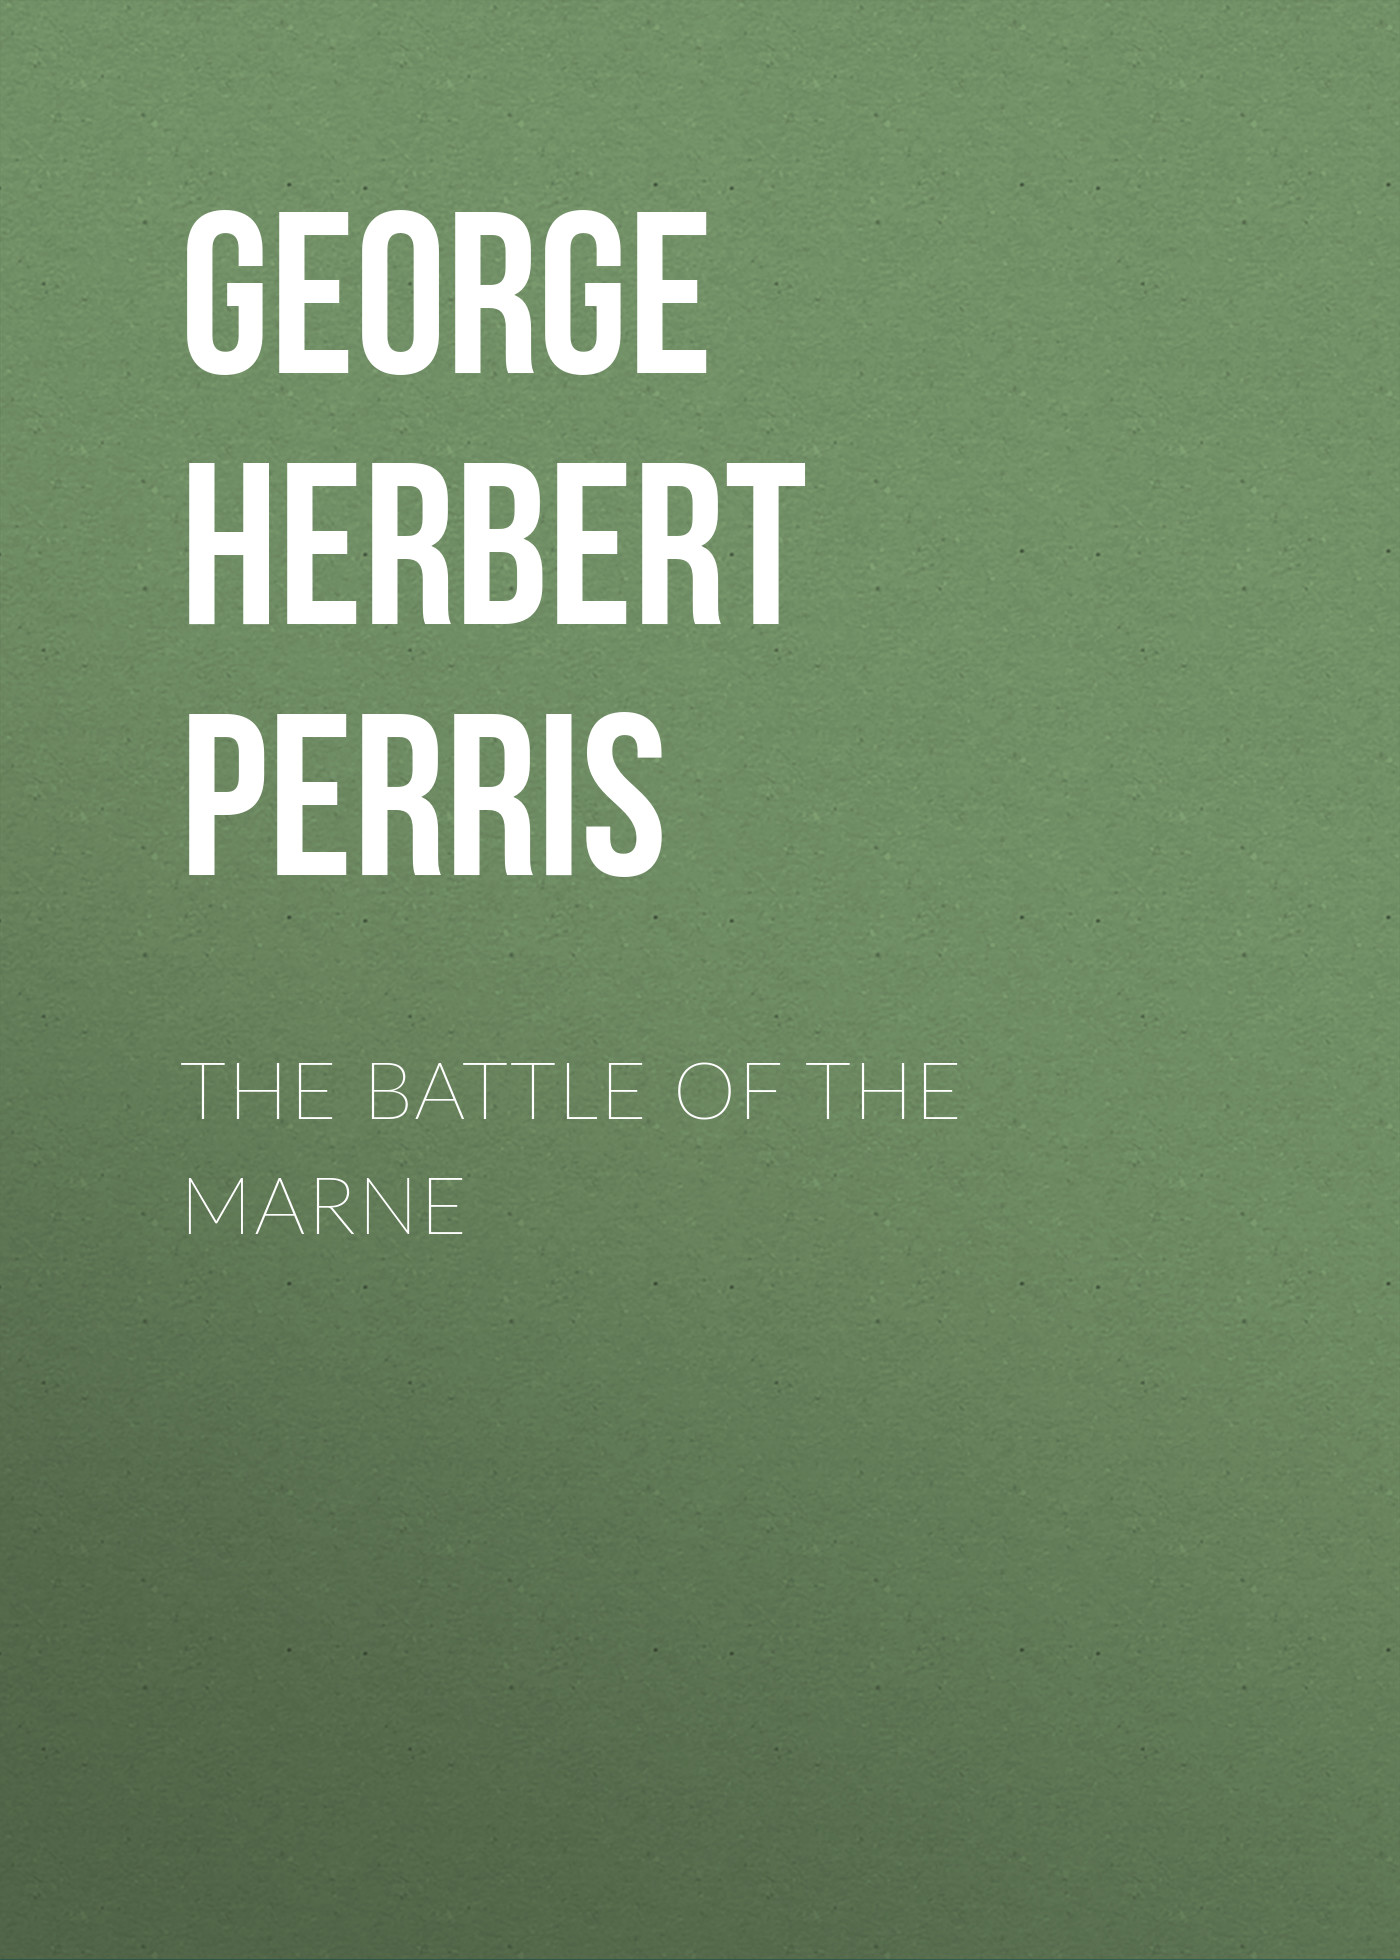 George Herbert Perris The Battle of the Marne